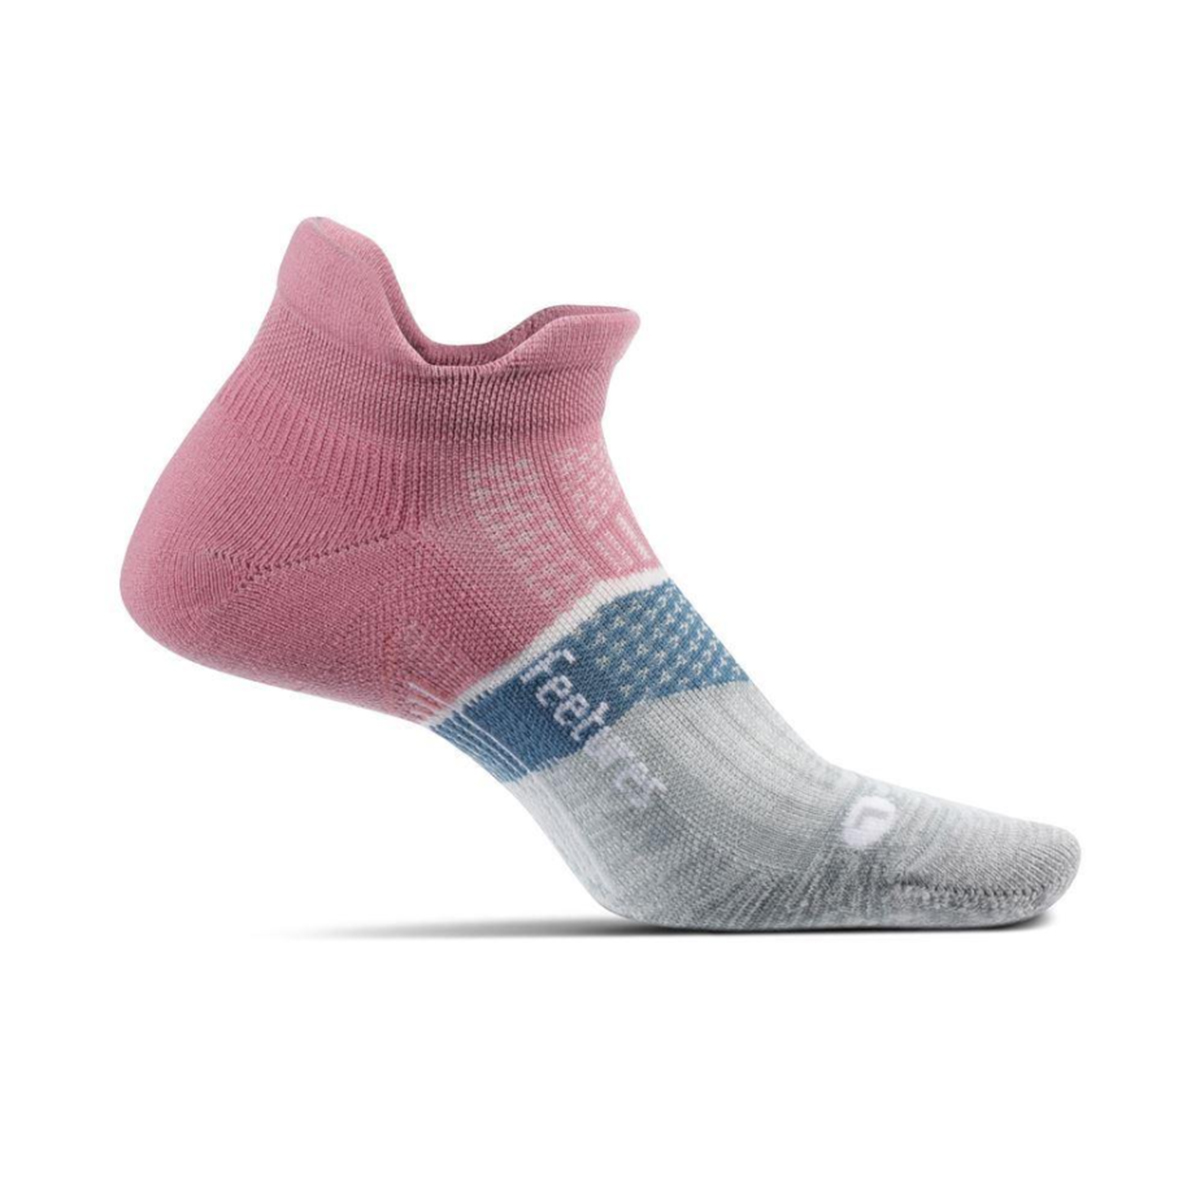 Feetures Elite Max Cushion No Show Tab Socks - Color: Heather Rose - Size: S, Heather Rose, large, image 1